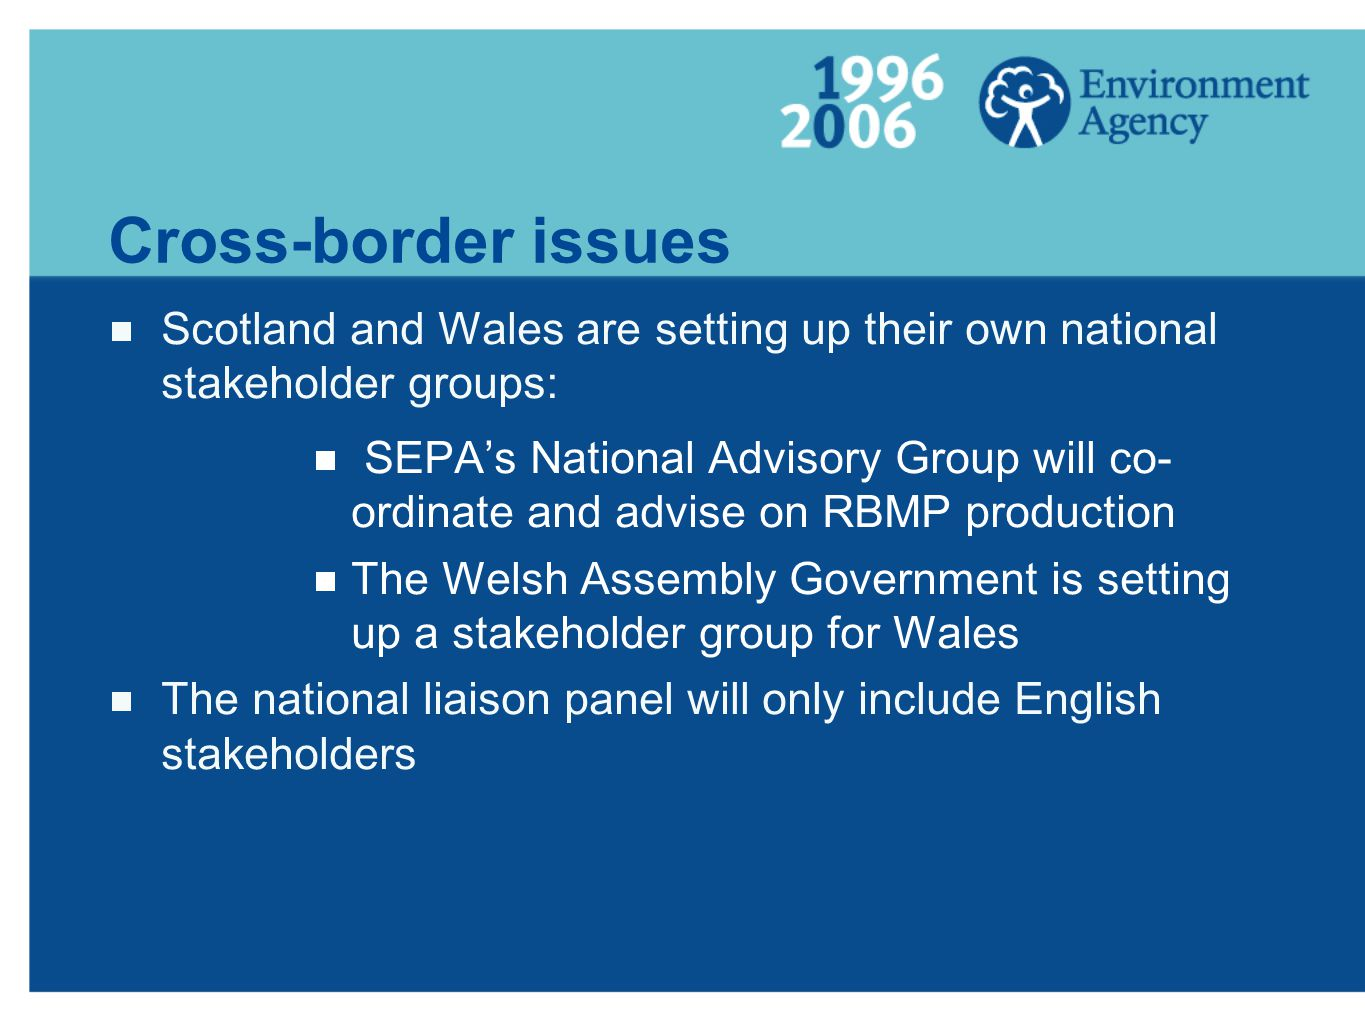 Cross-border issues Scotland and Wales are setting up their own national stakeholder groups: SEPAs National Advisory Group will co- ordinate and advise on RBMP production The Welsh Assembly Government is setting up a stakeholder group for Wales The national liaison panel will only include English stakeholders